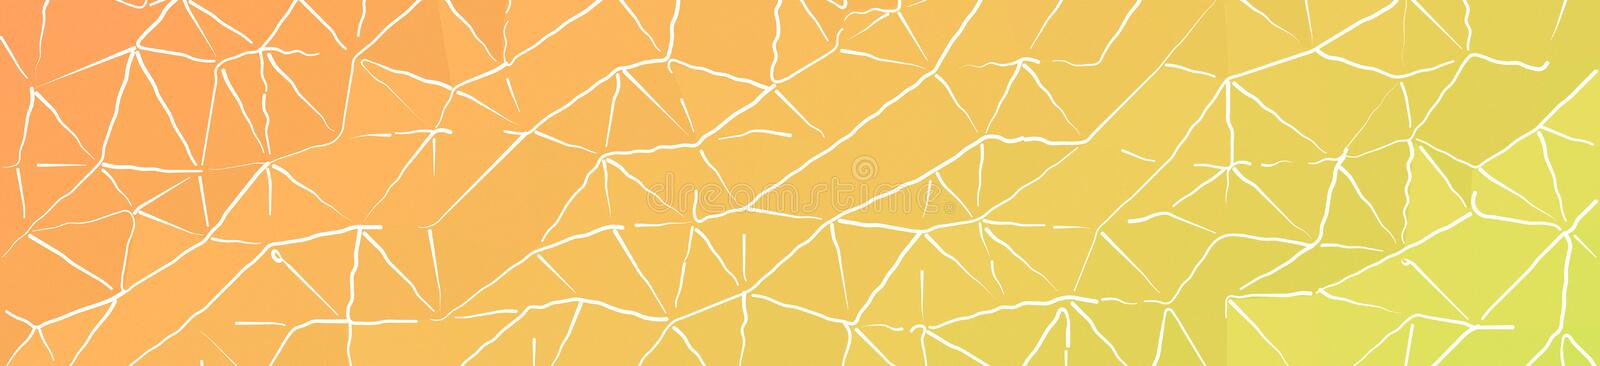 Orange and green with thin white strokes in banner shape background illustration. Orange and green with thin white strokes in banner shape background vector illustration